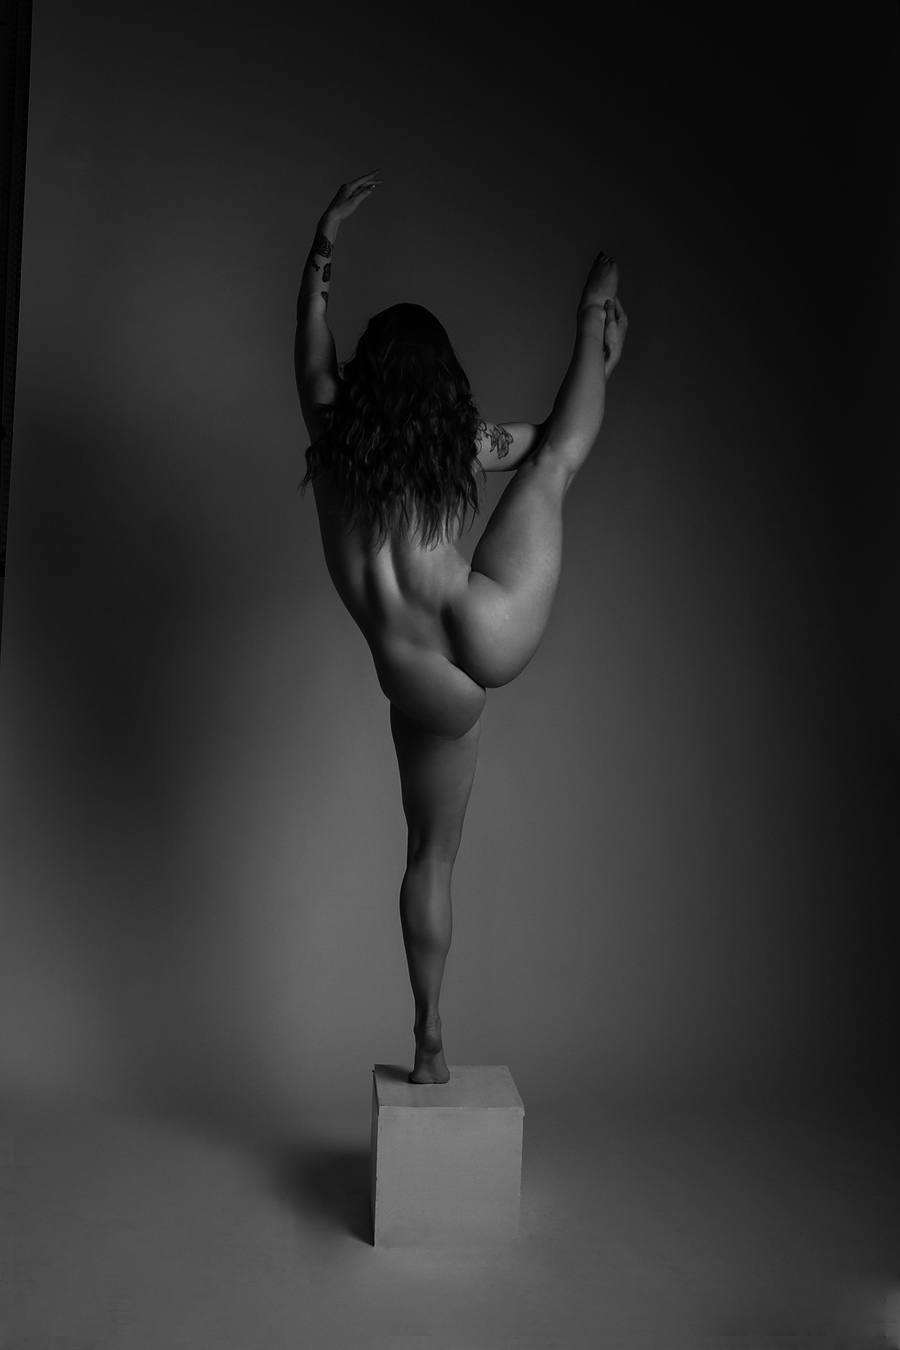 Life is about balance / Model Nico Dee, Taken at PGD Modelling and Photography Studios / Uploaded 9th January 2020 @ 09:30 AM